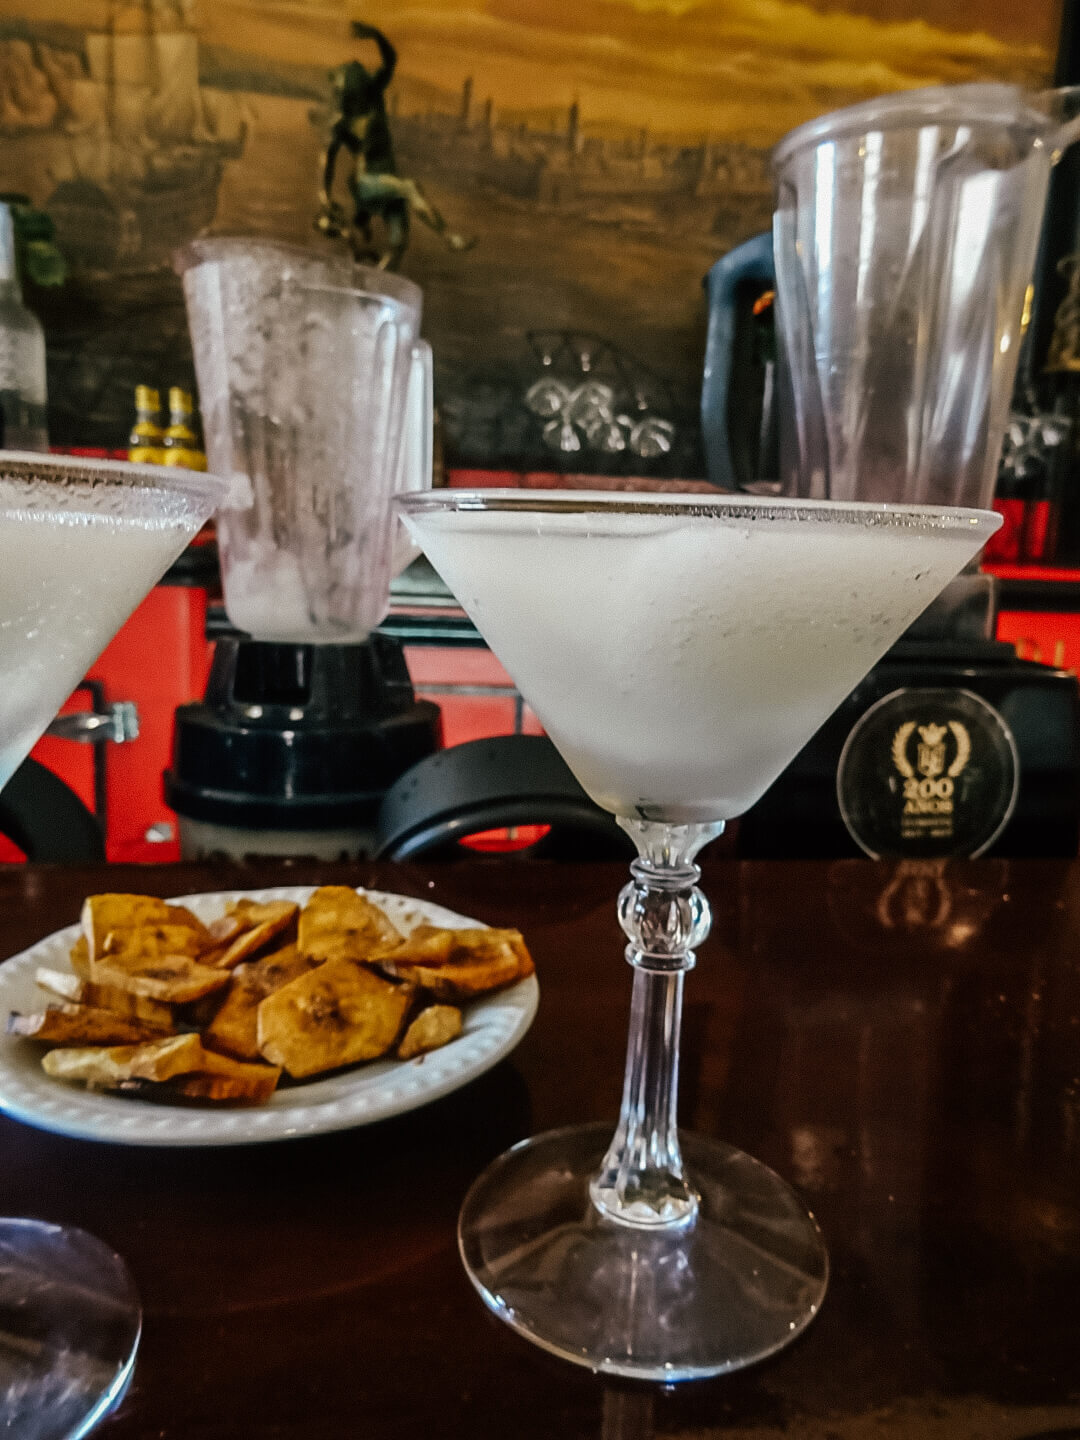 Daiquiri & Plantains in El floridita